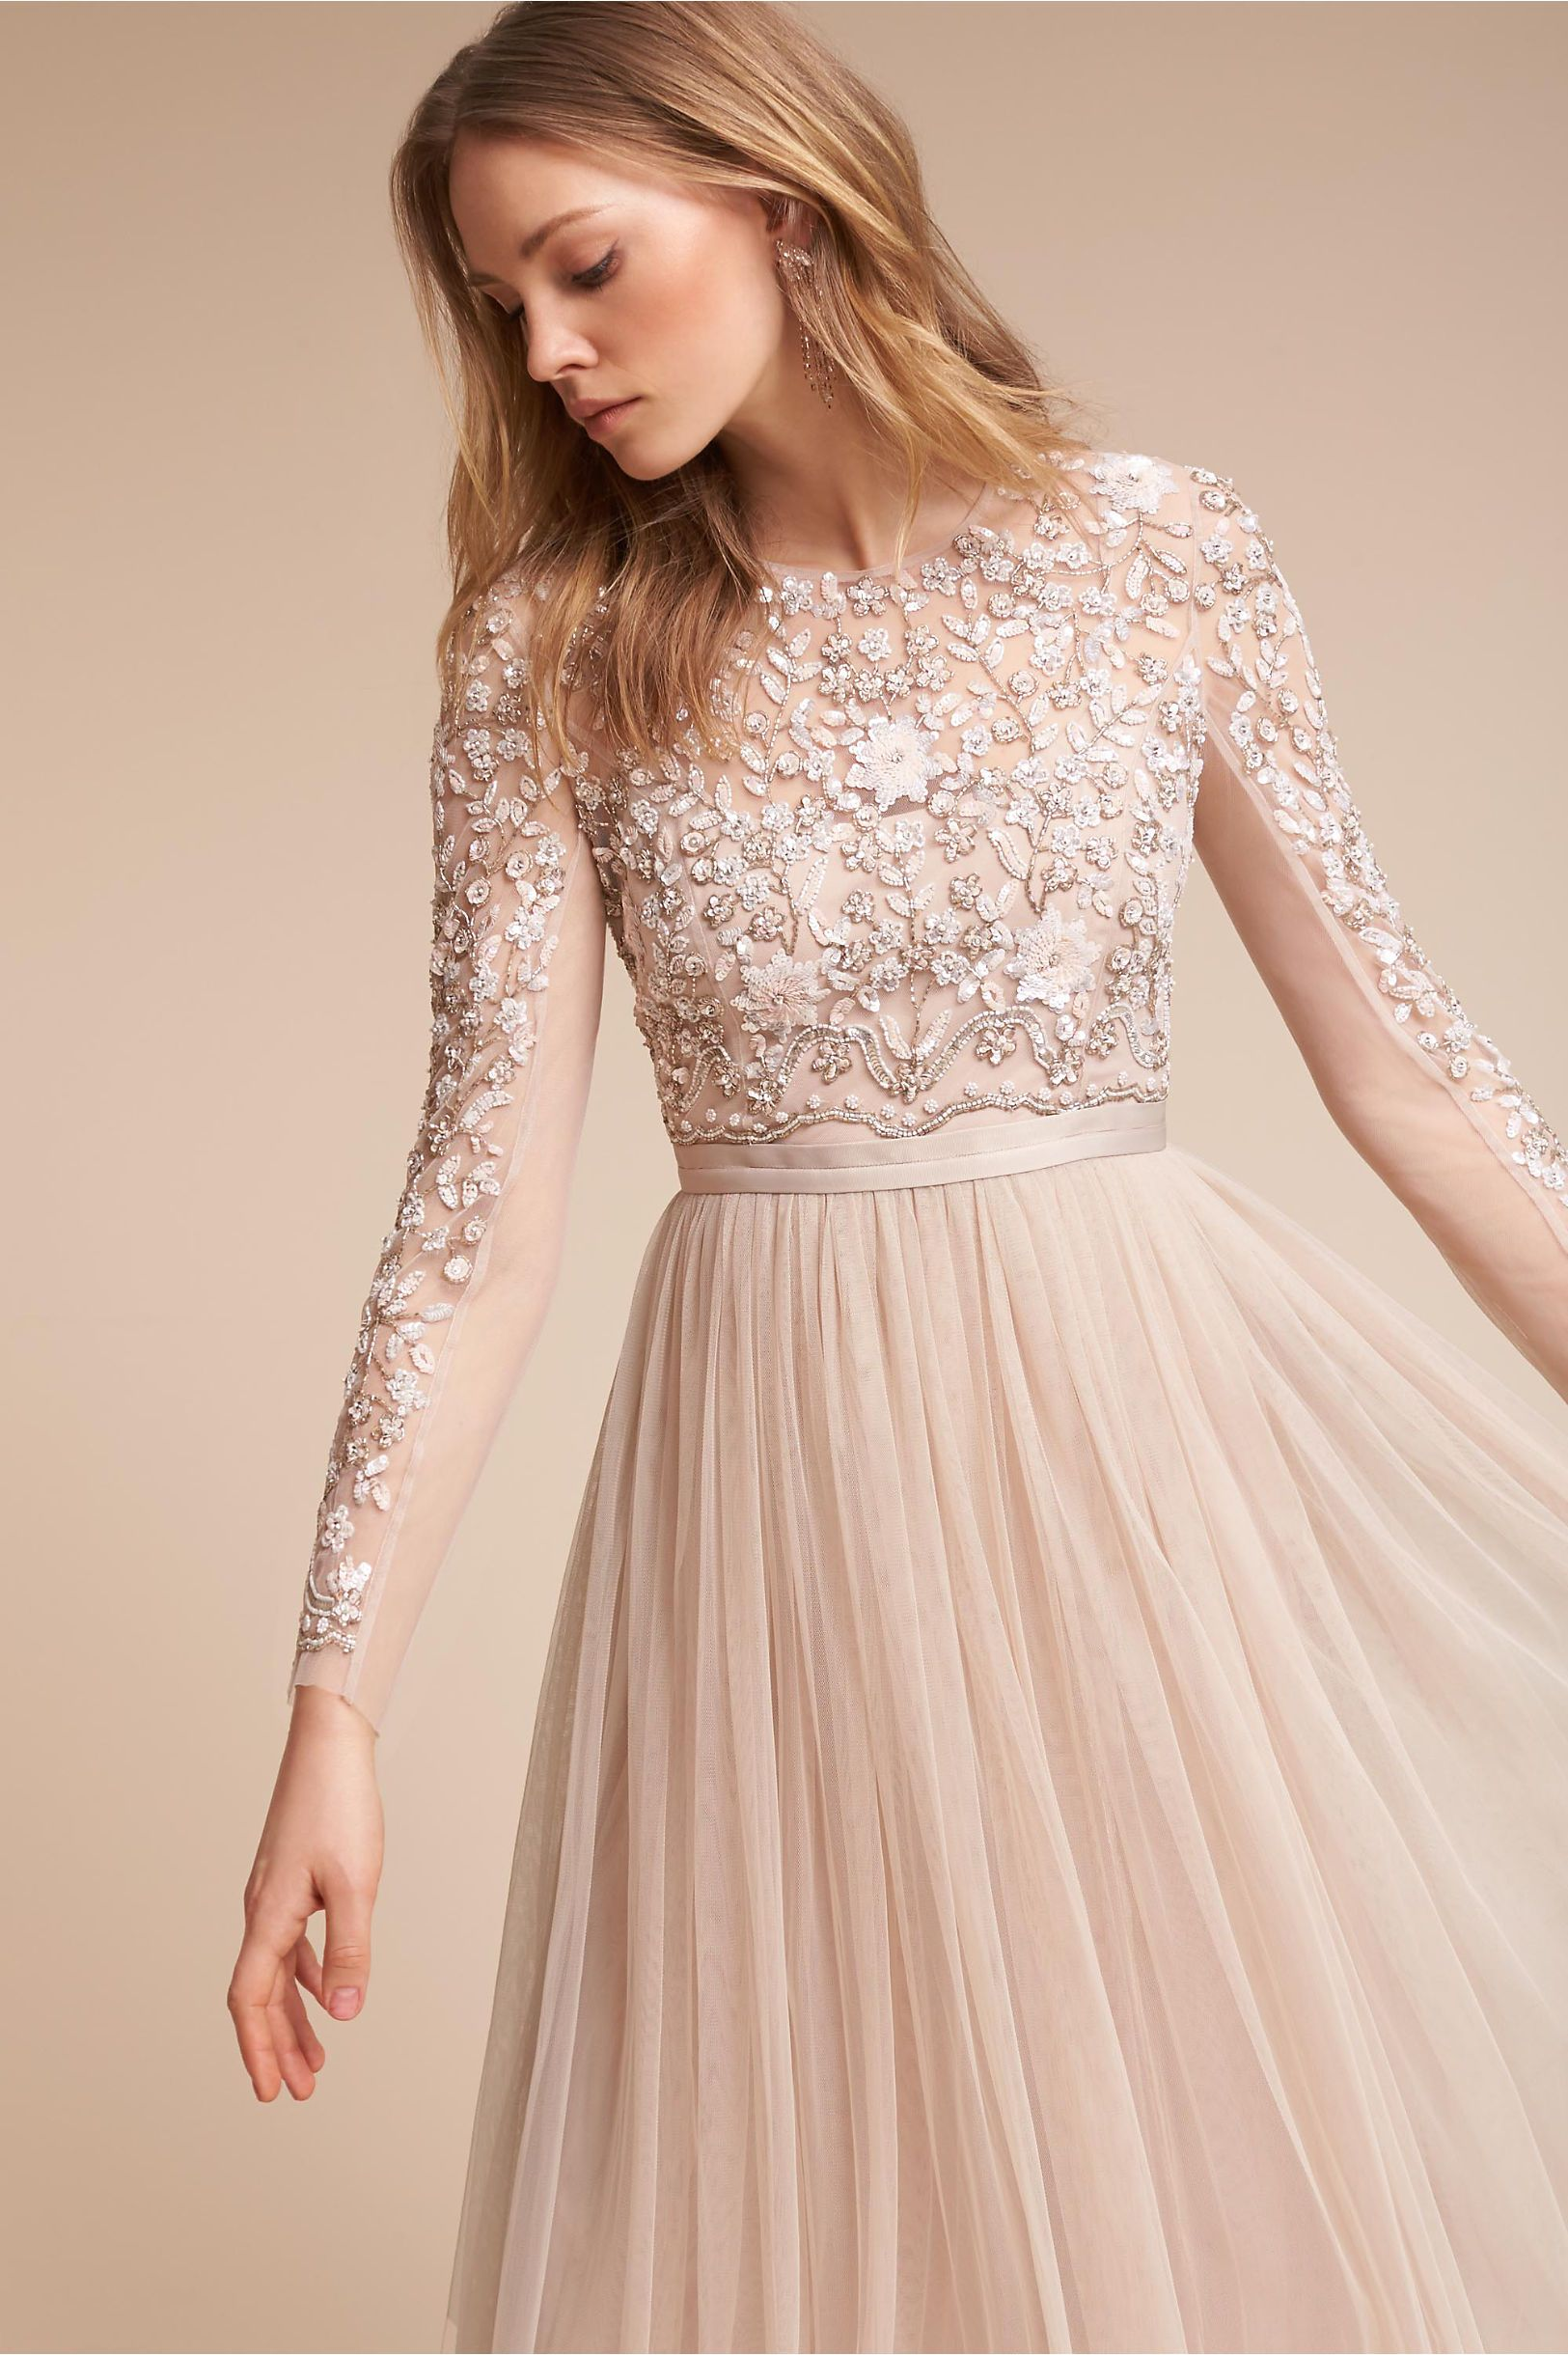 Bhldn rhapsody dress in bride wedding dresses bhldn for Best wedding dresses with sleeves